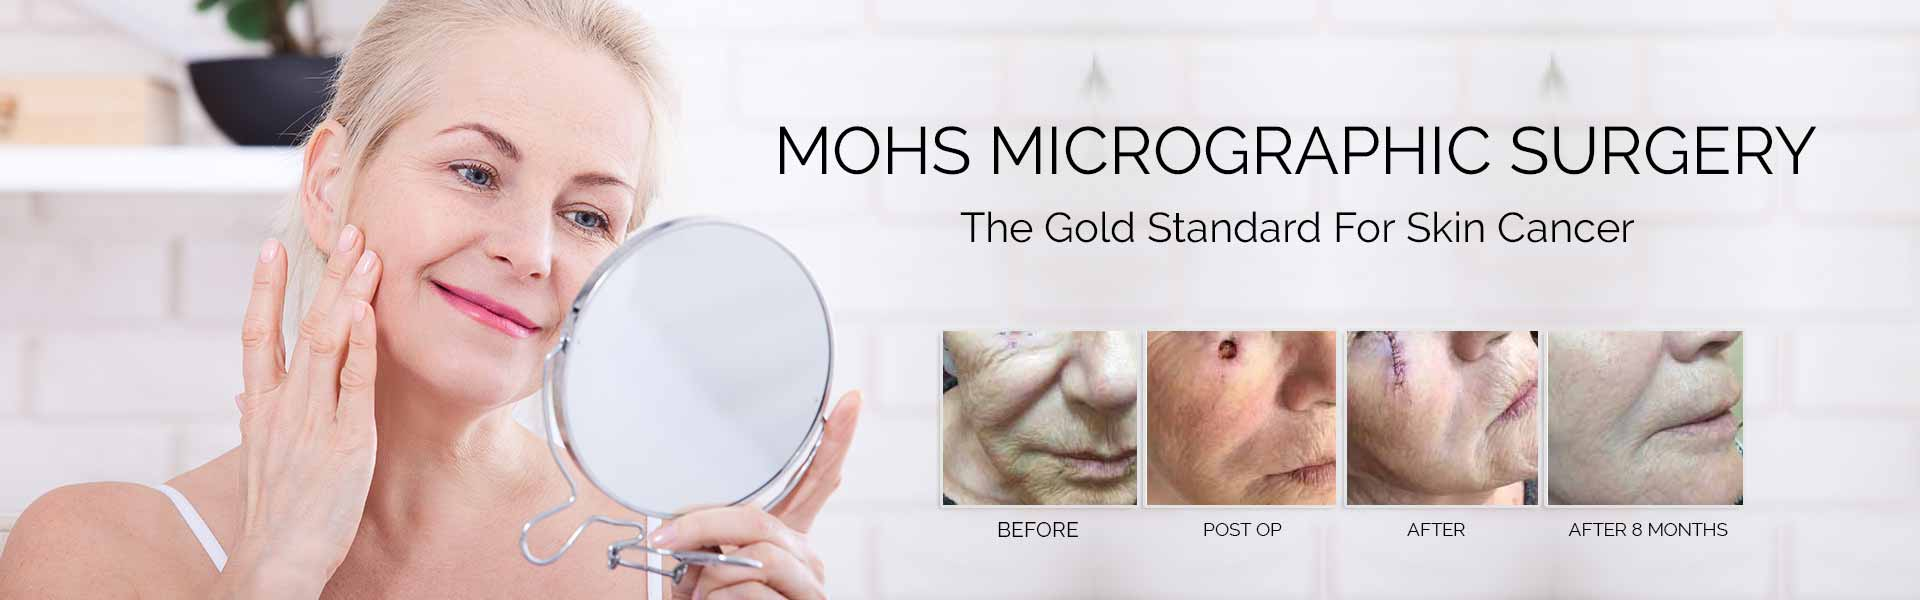 Mohs Surgery By Khrom